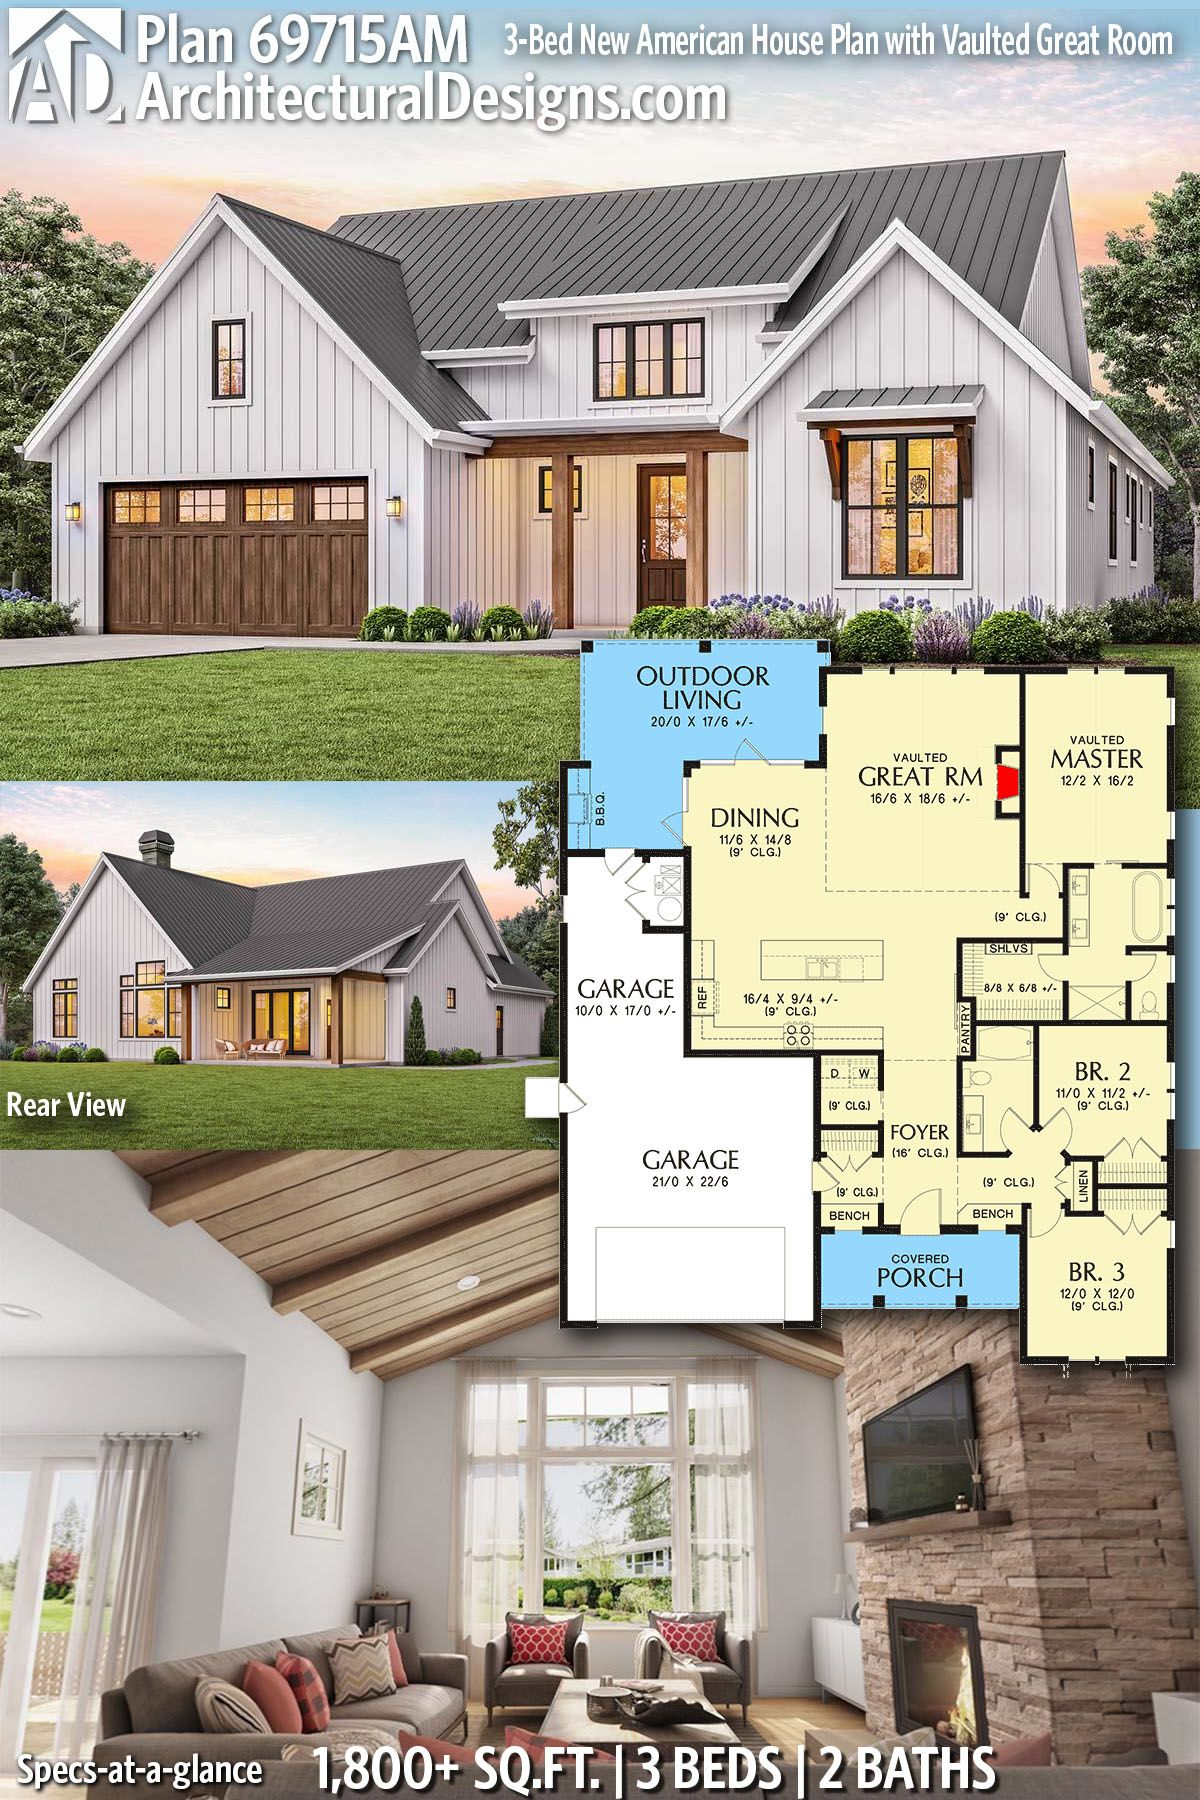 Plan 69715am 3 Bed New American House Plan With Vaulted Great Room American Houses New House Plans Dream House Plans